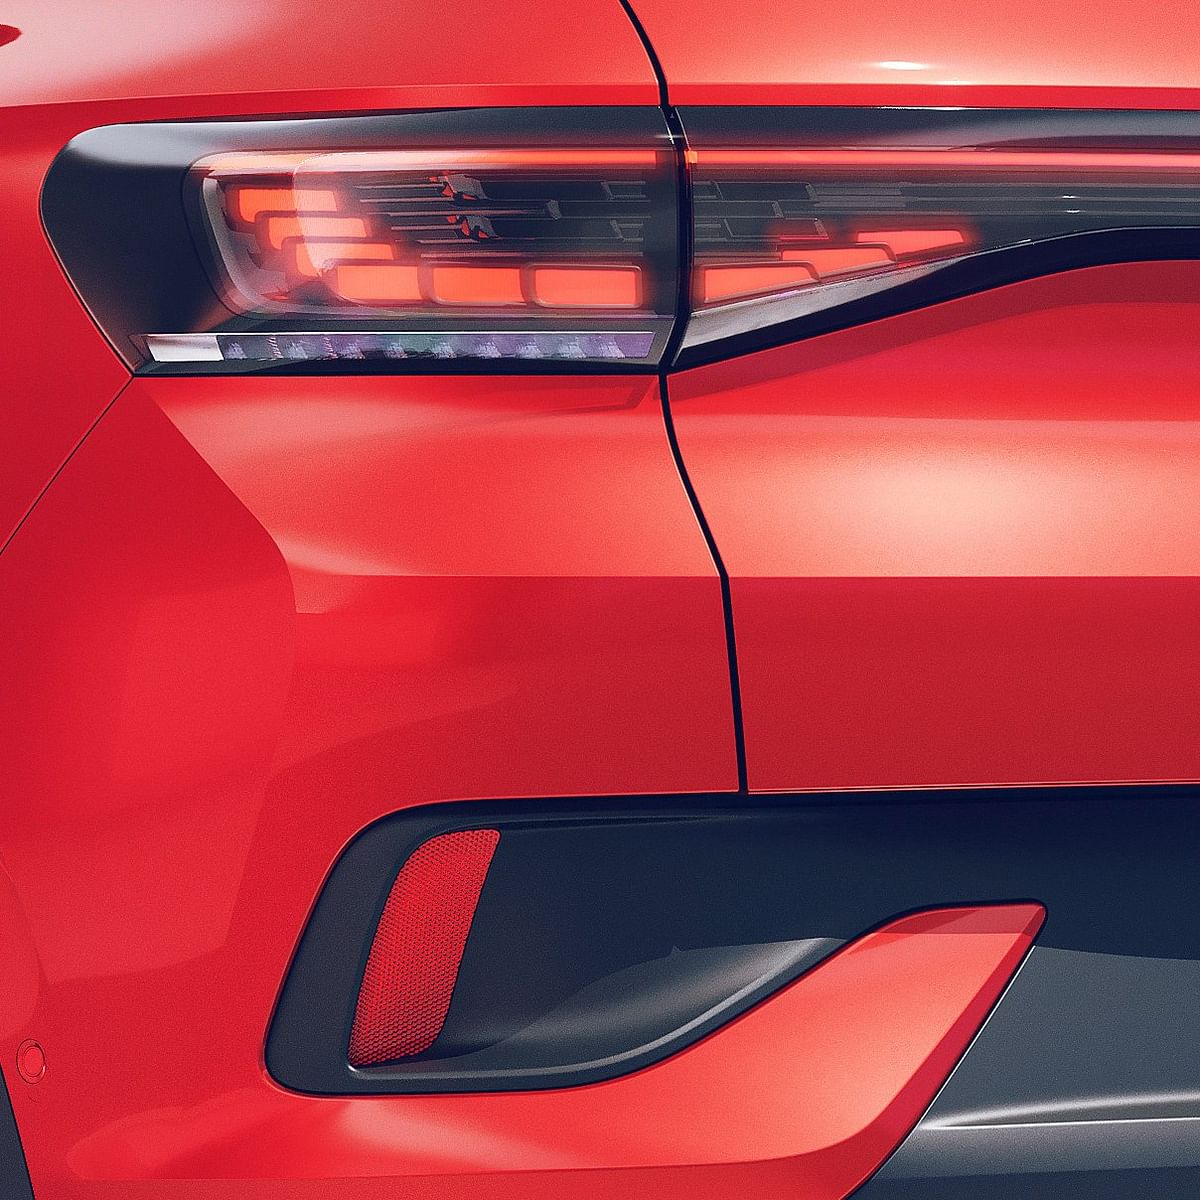 The Volkswagen ID.4 GTX gets 3D LED tail lights and a full-width LED light bar